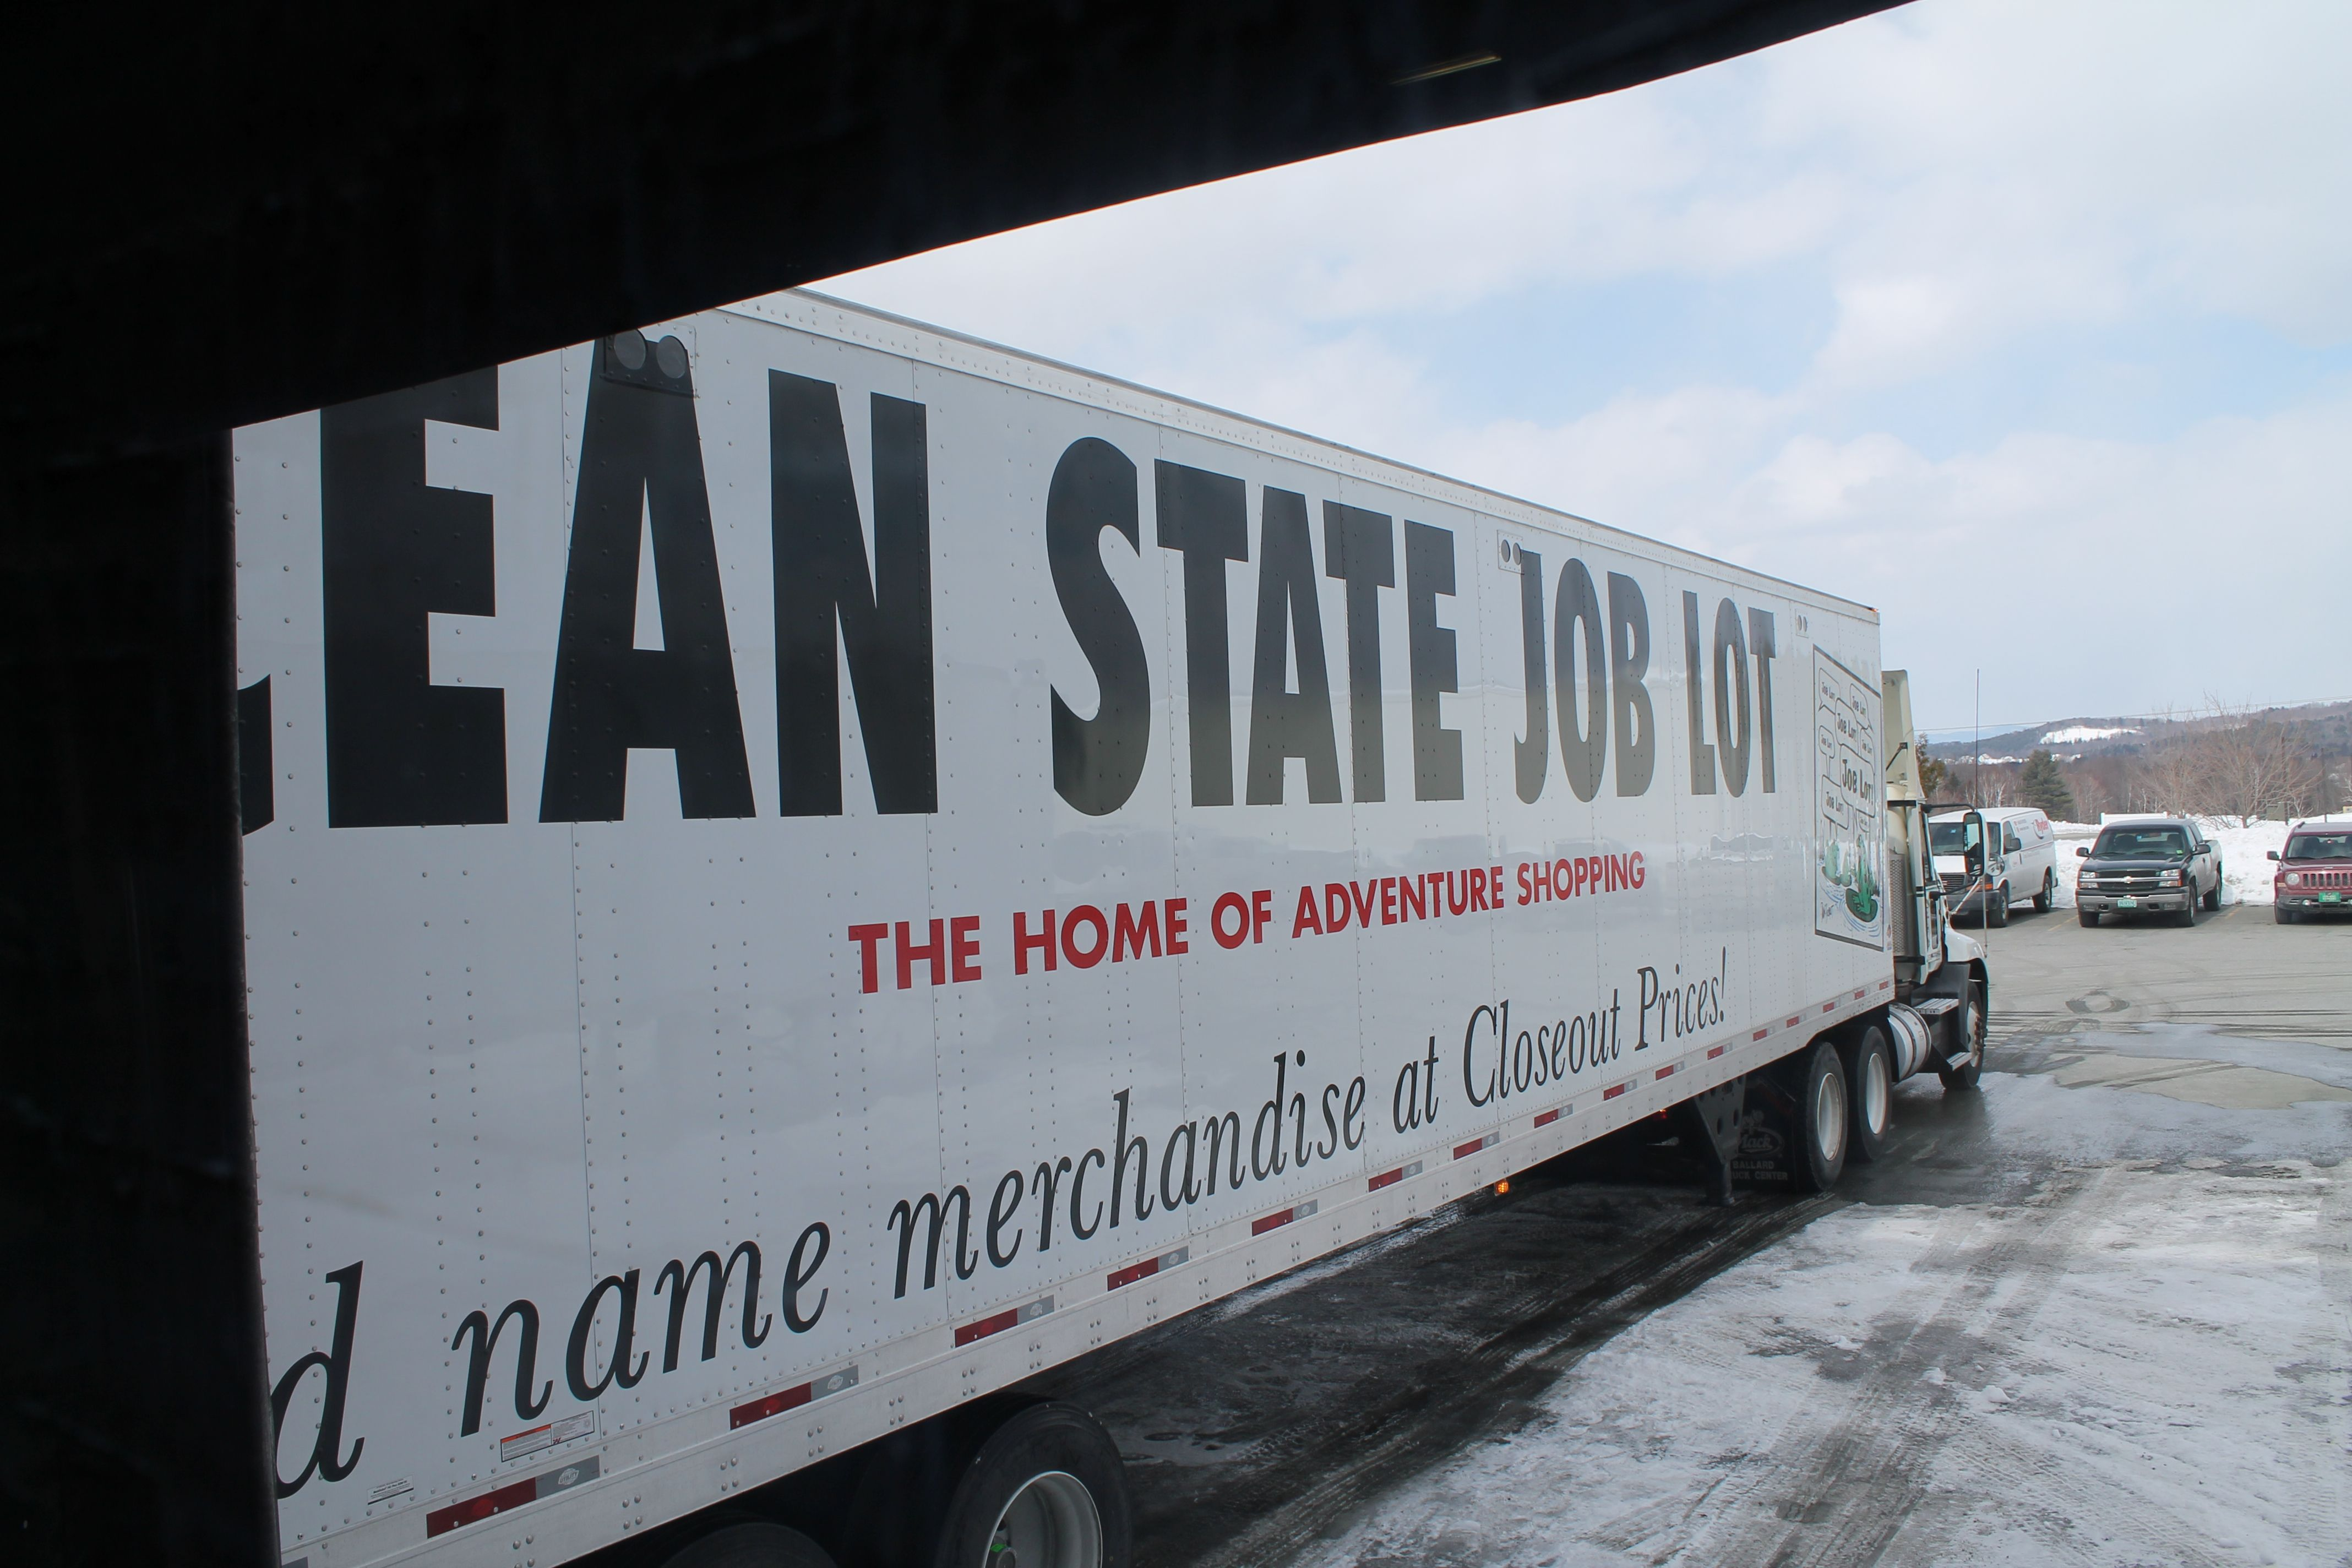 Ocean state job lot made a delivery of 18 pallets or